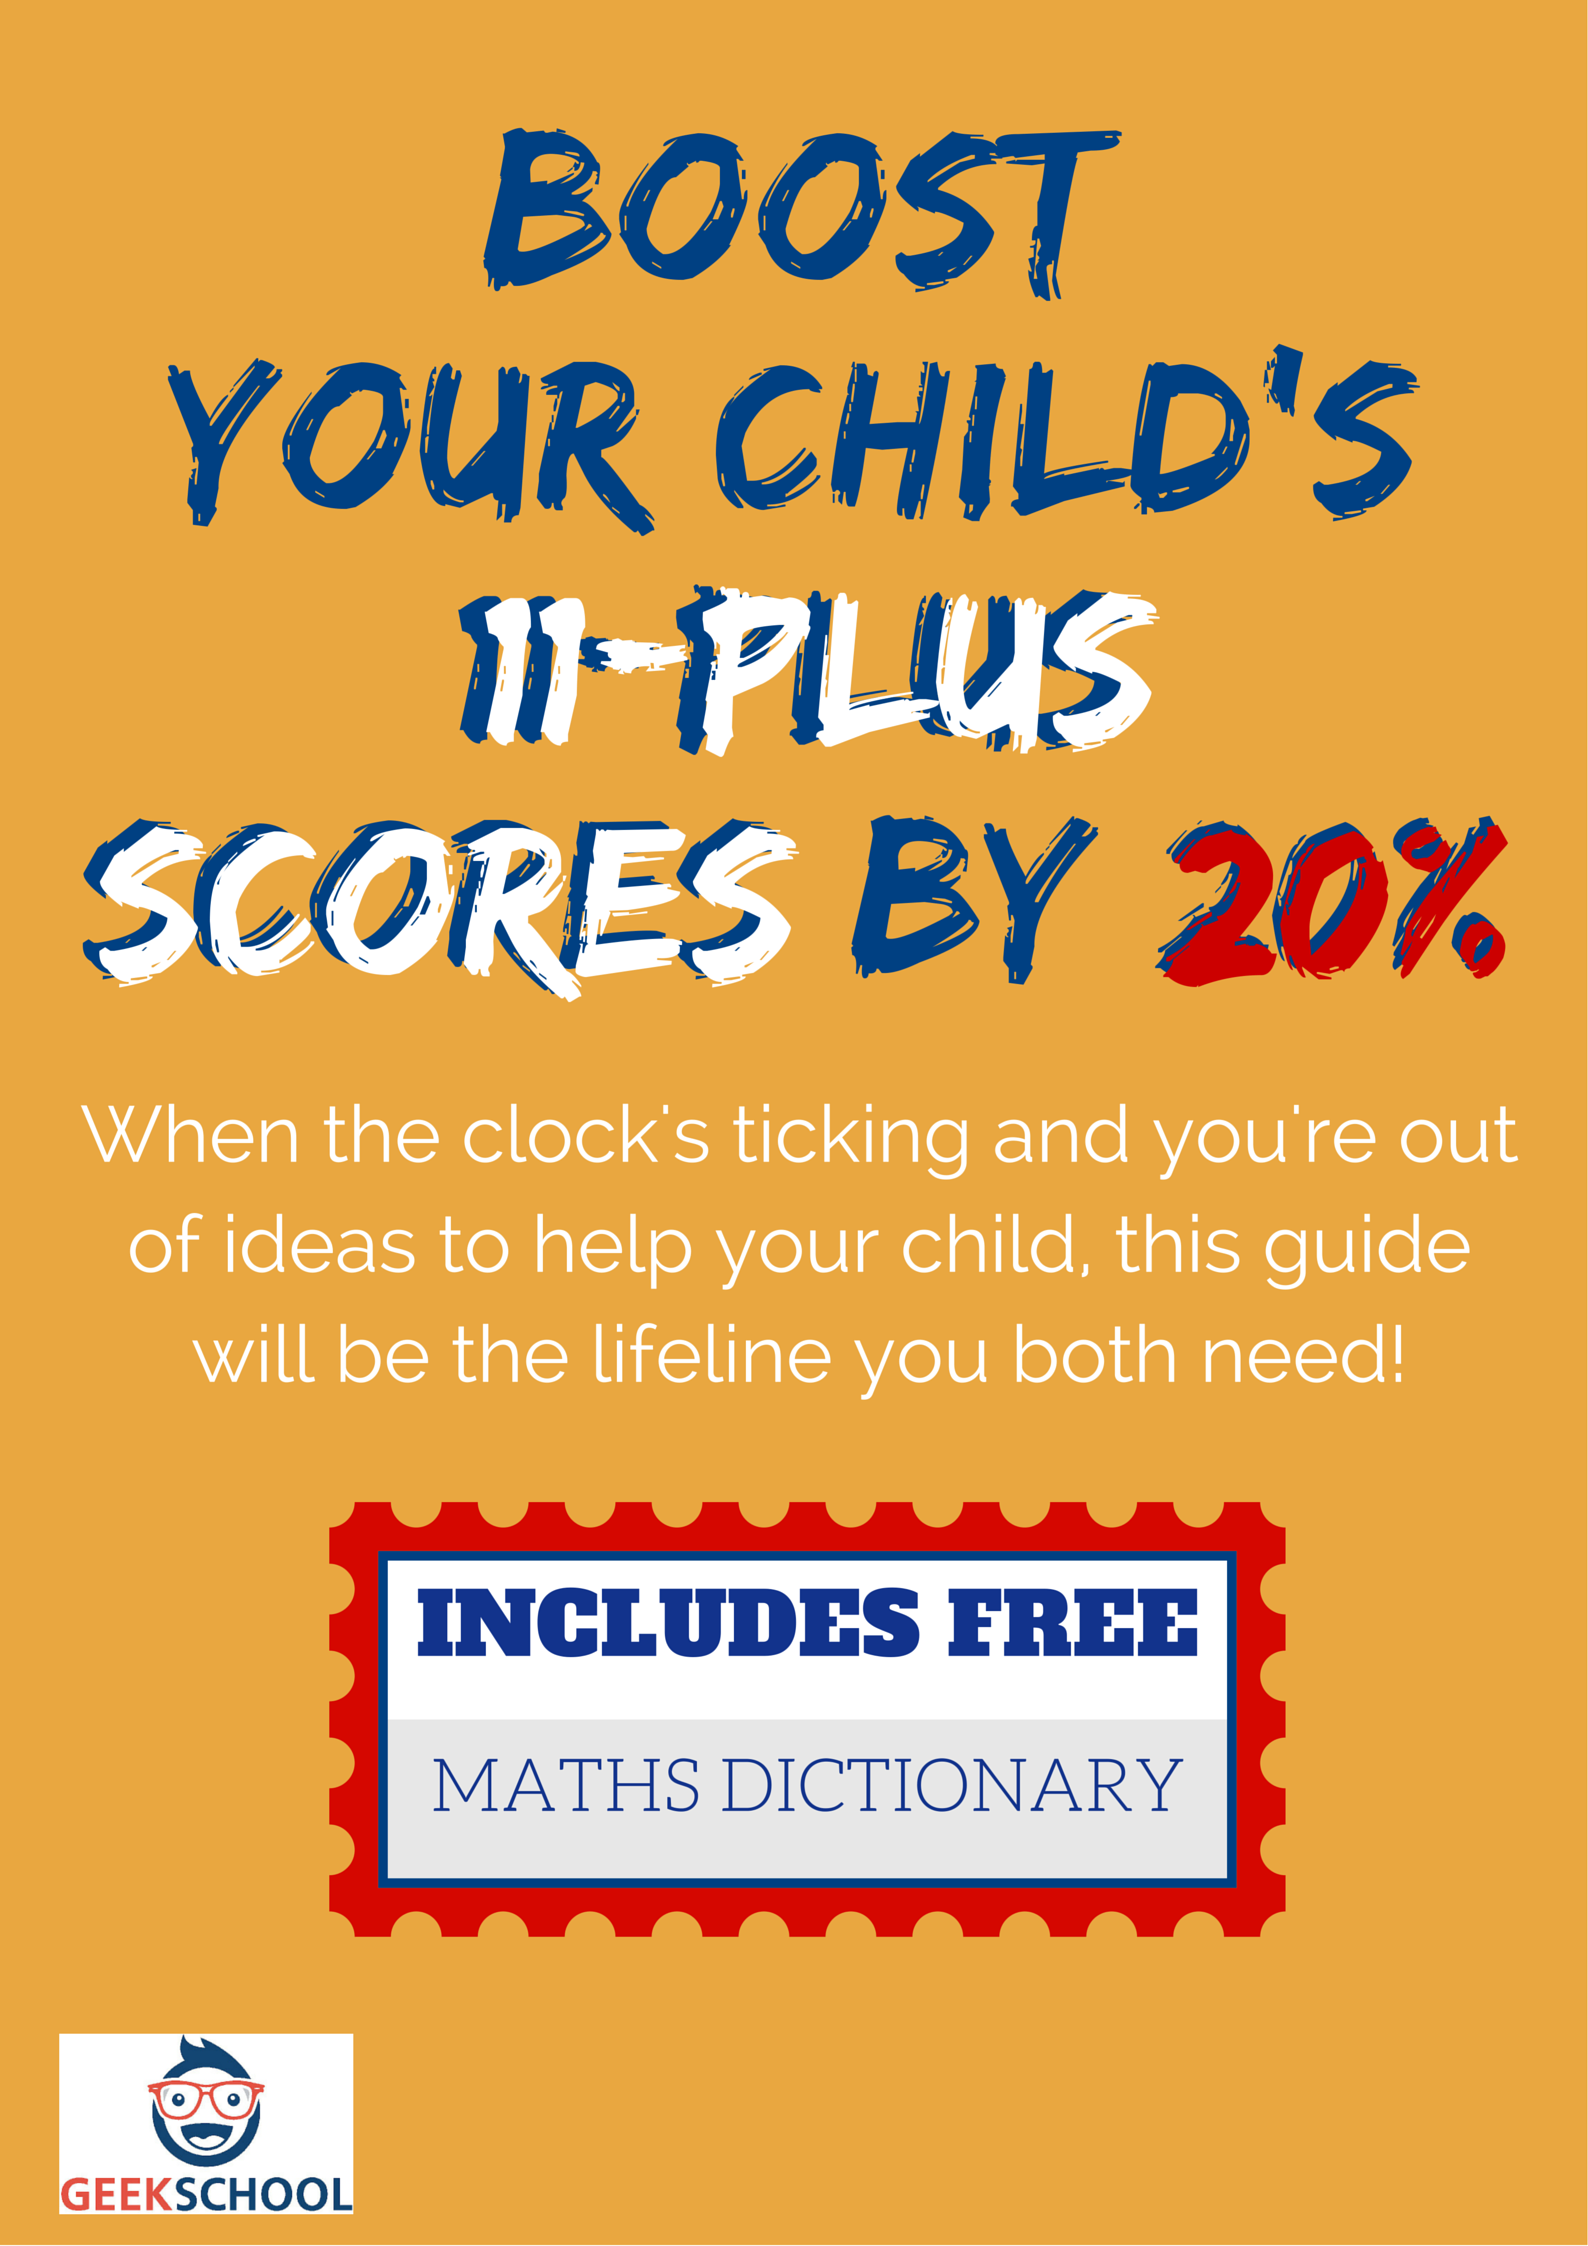 Boost 11 Plus maths scores